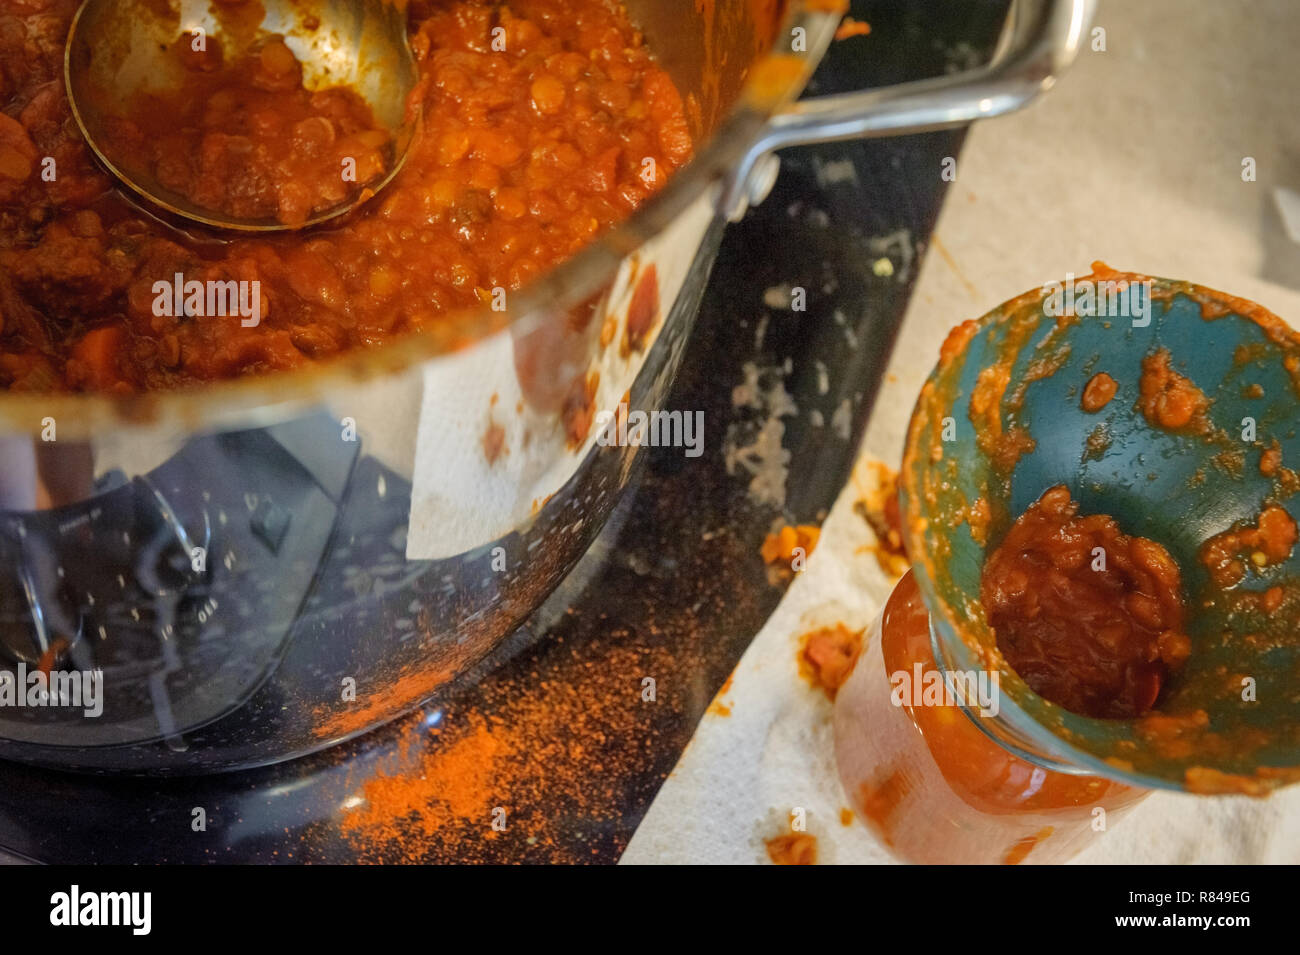 homemade spaghetti sauce make a mess in the kitchen - Stock Image